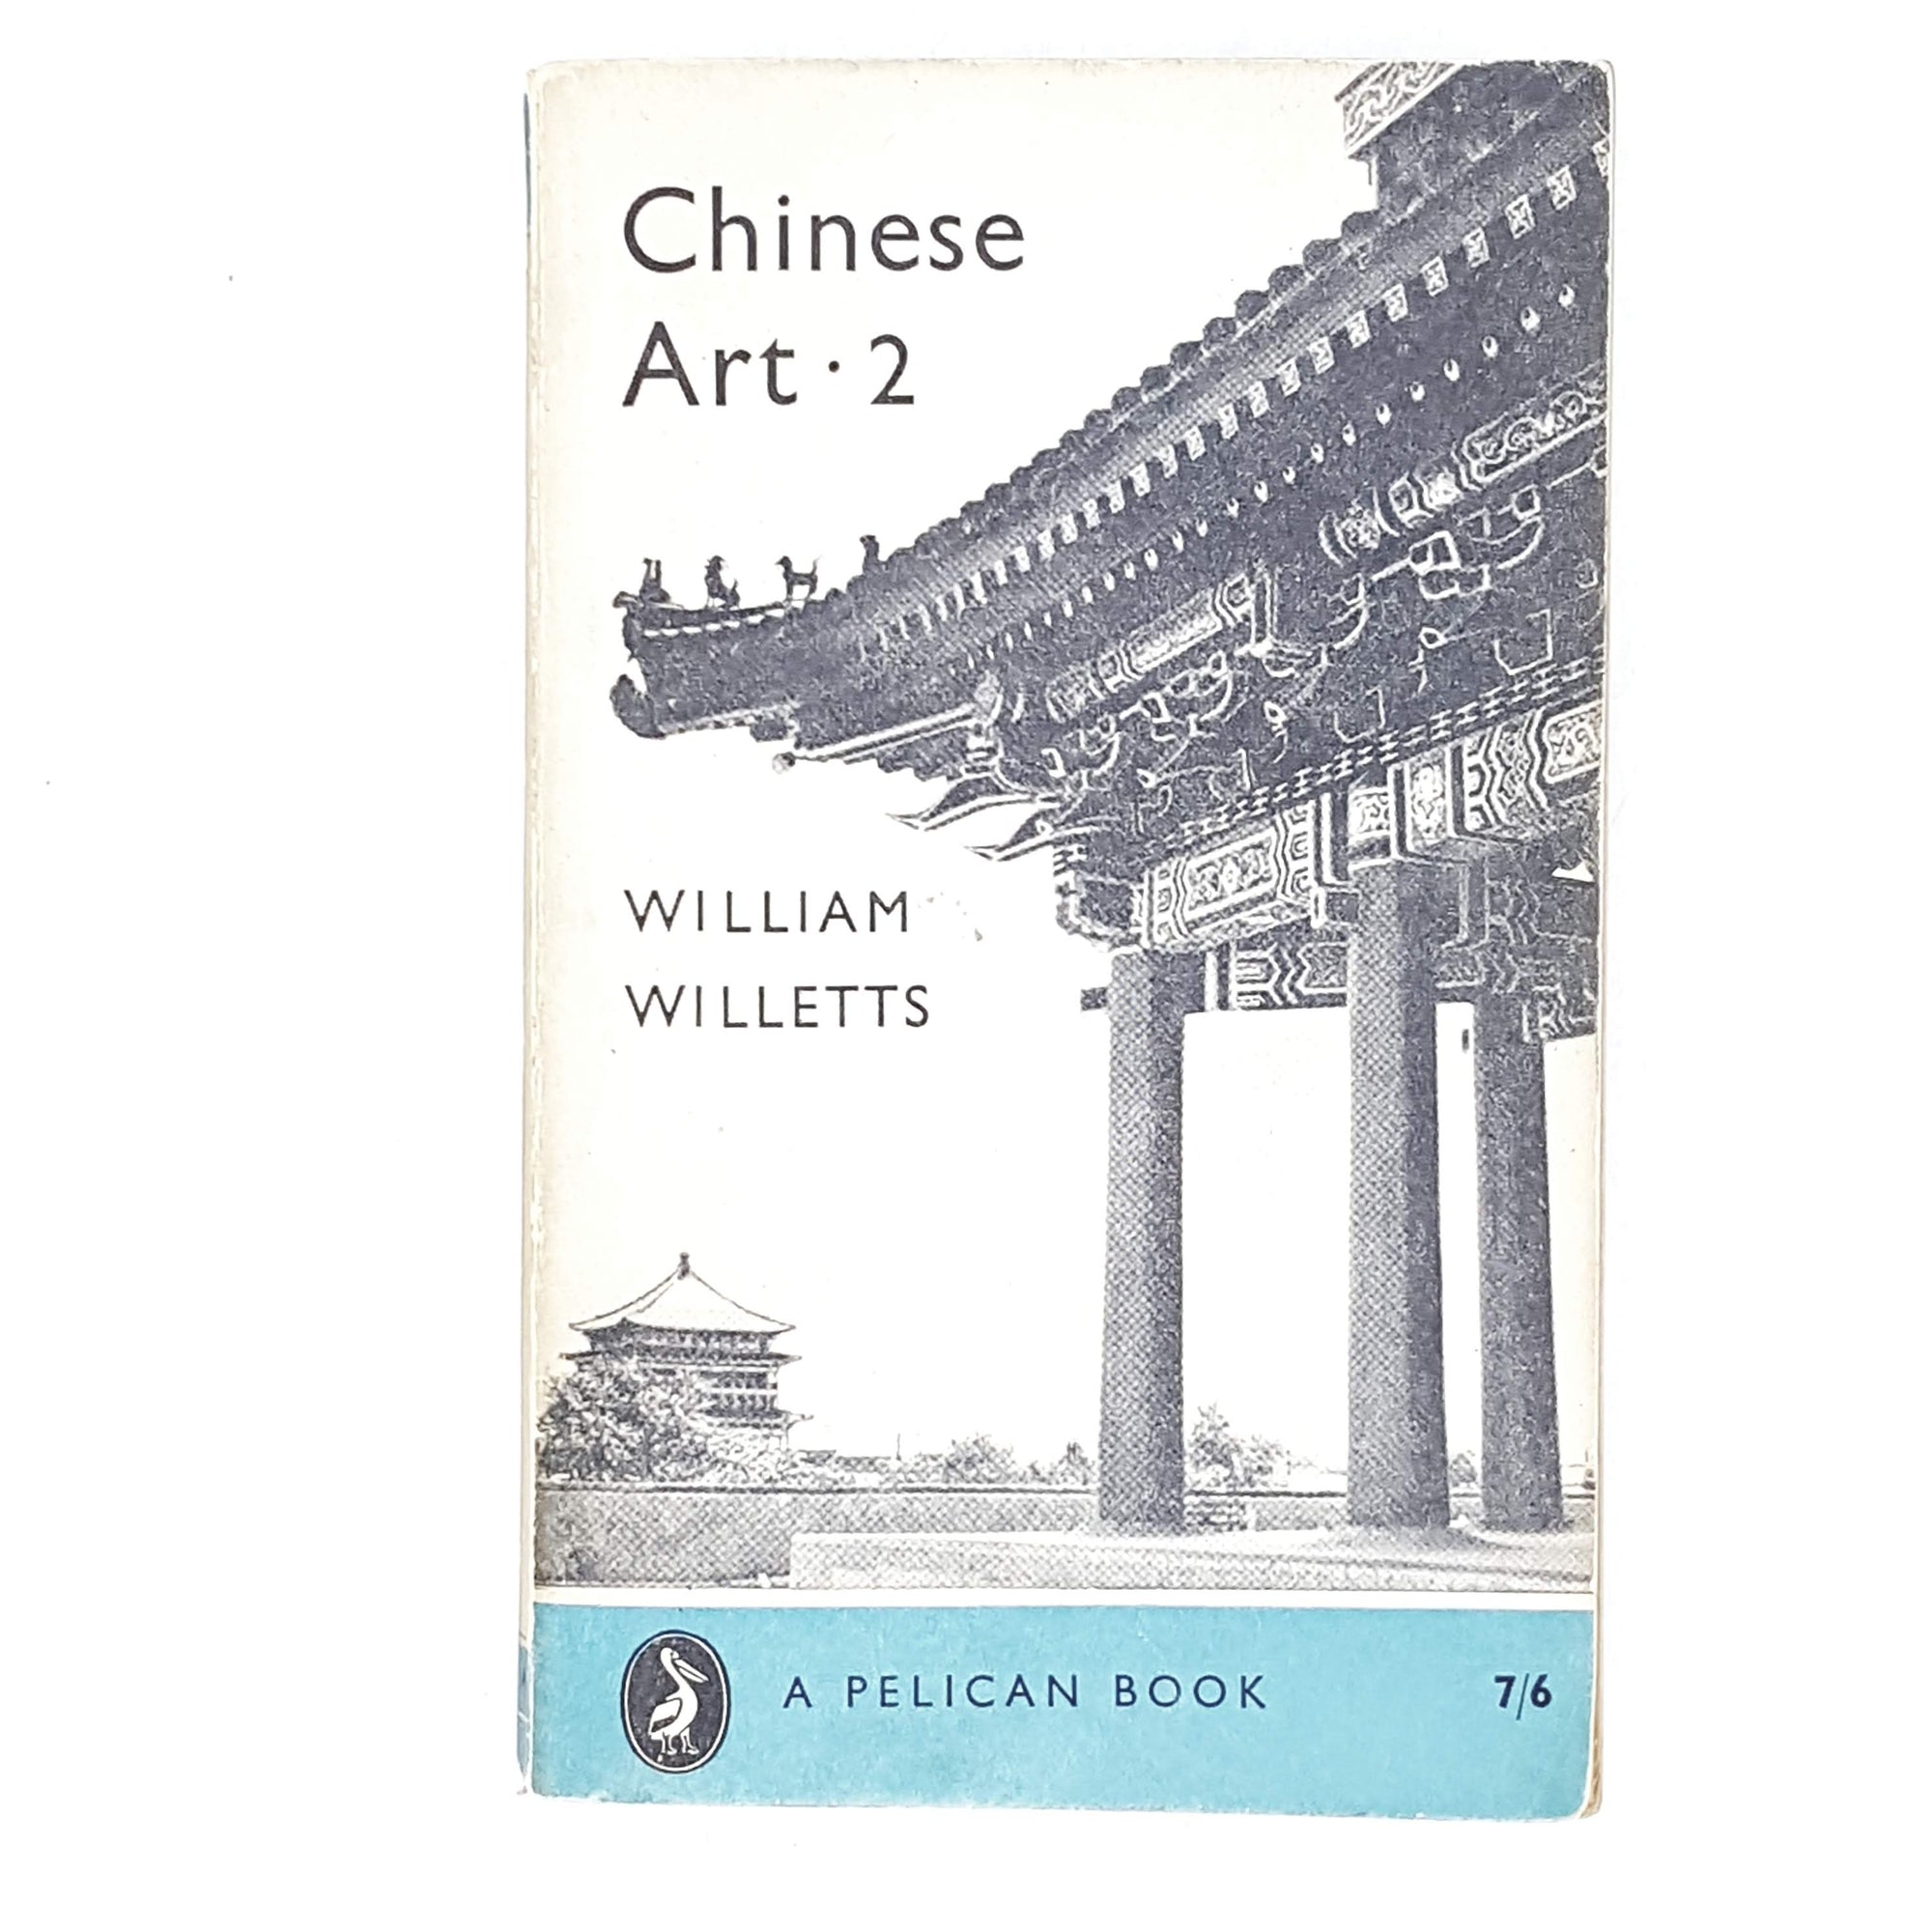 Vintage Pelican Chinese Art II by William Willetts 1958